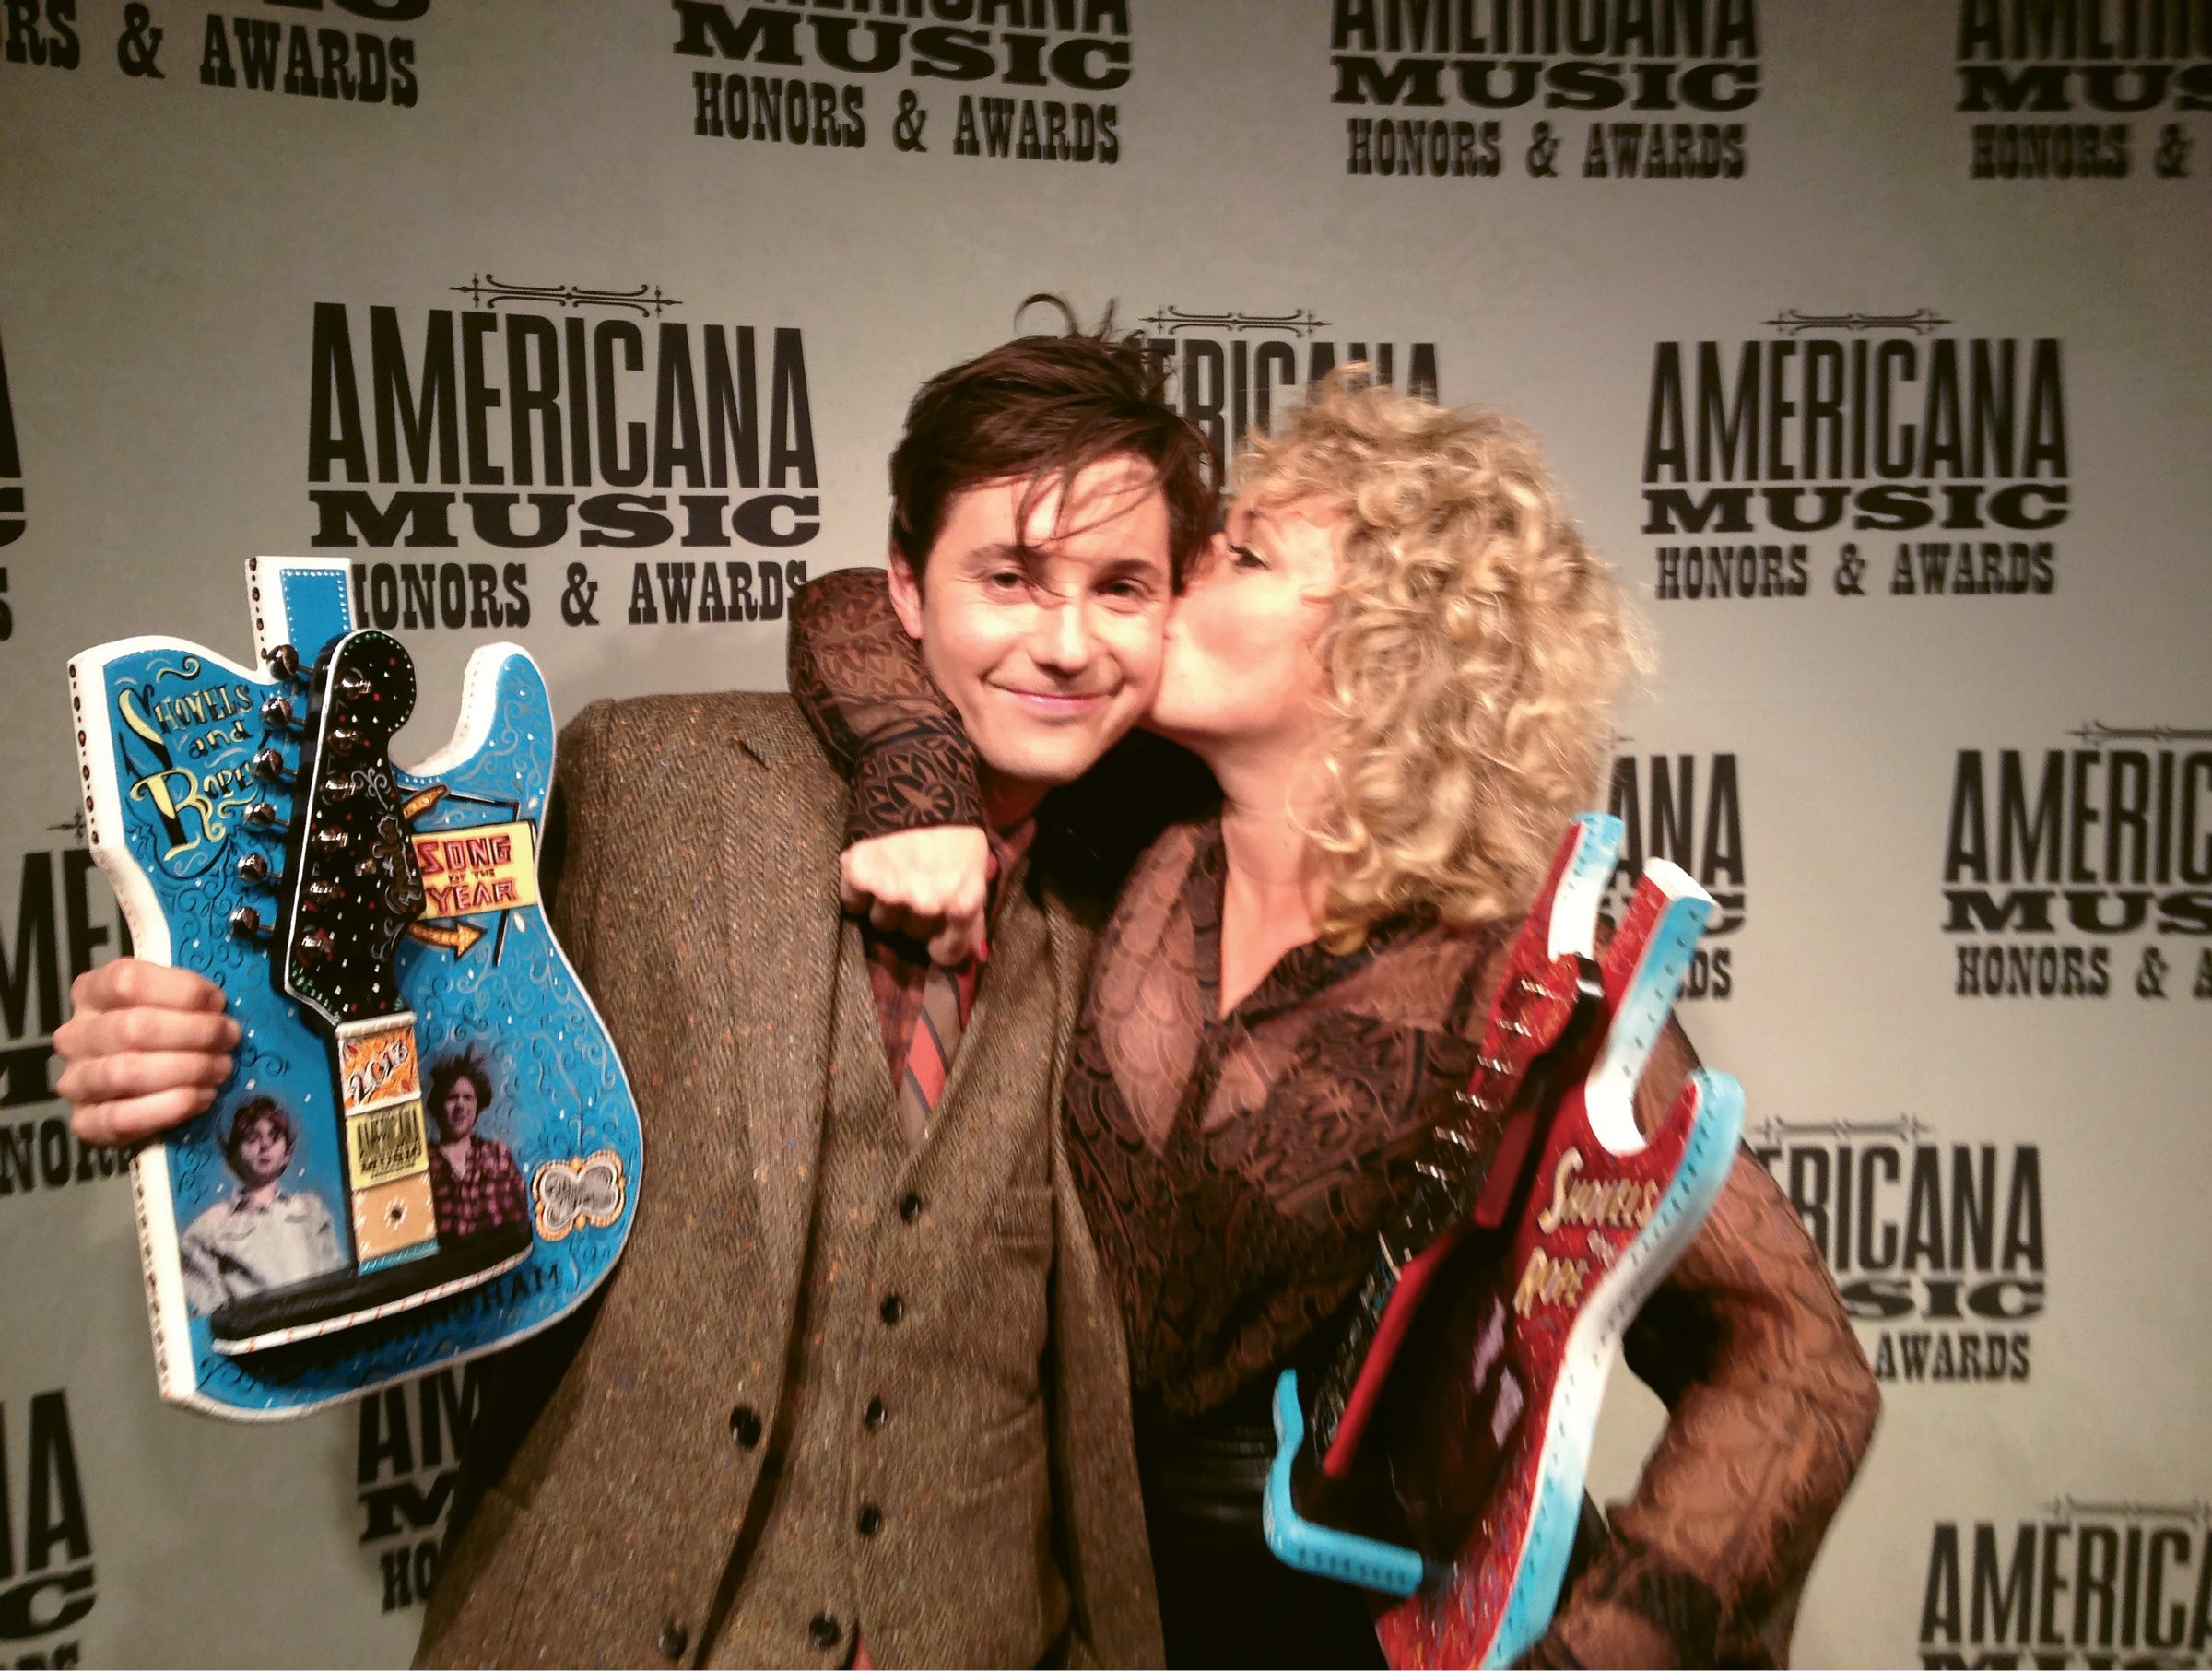 Winning big at the Americana Music Awards in 2013